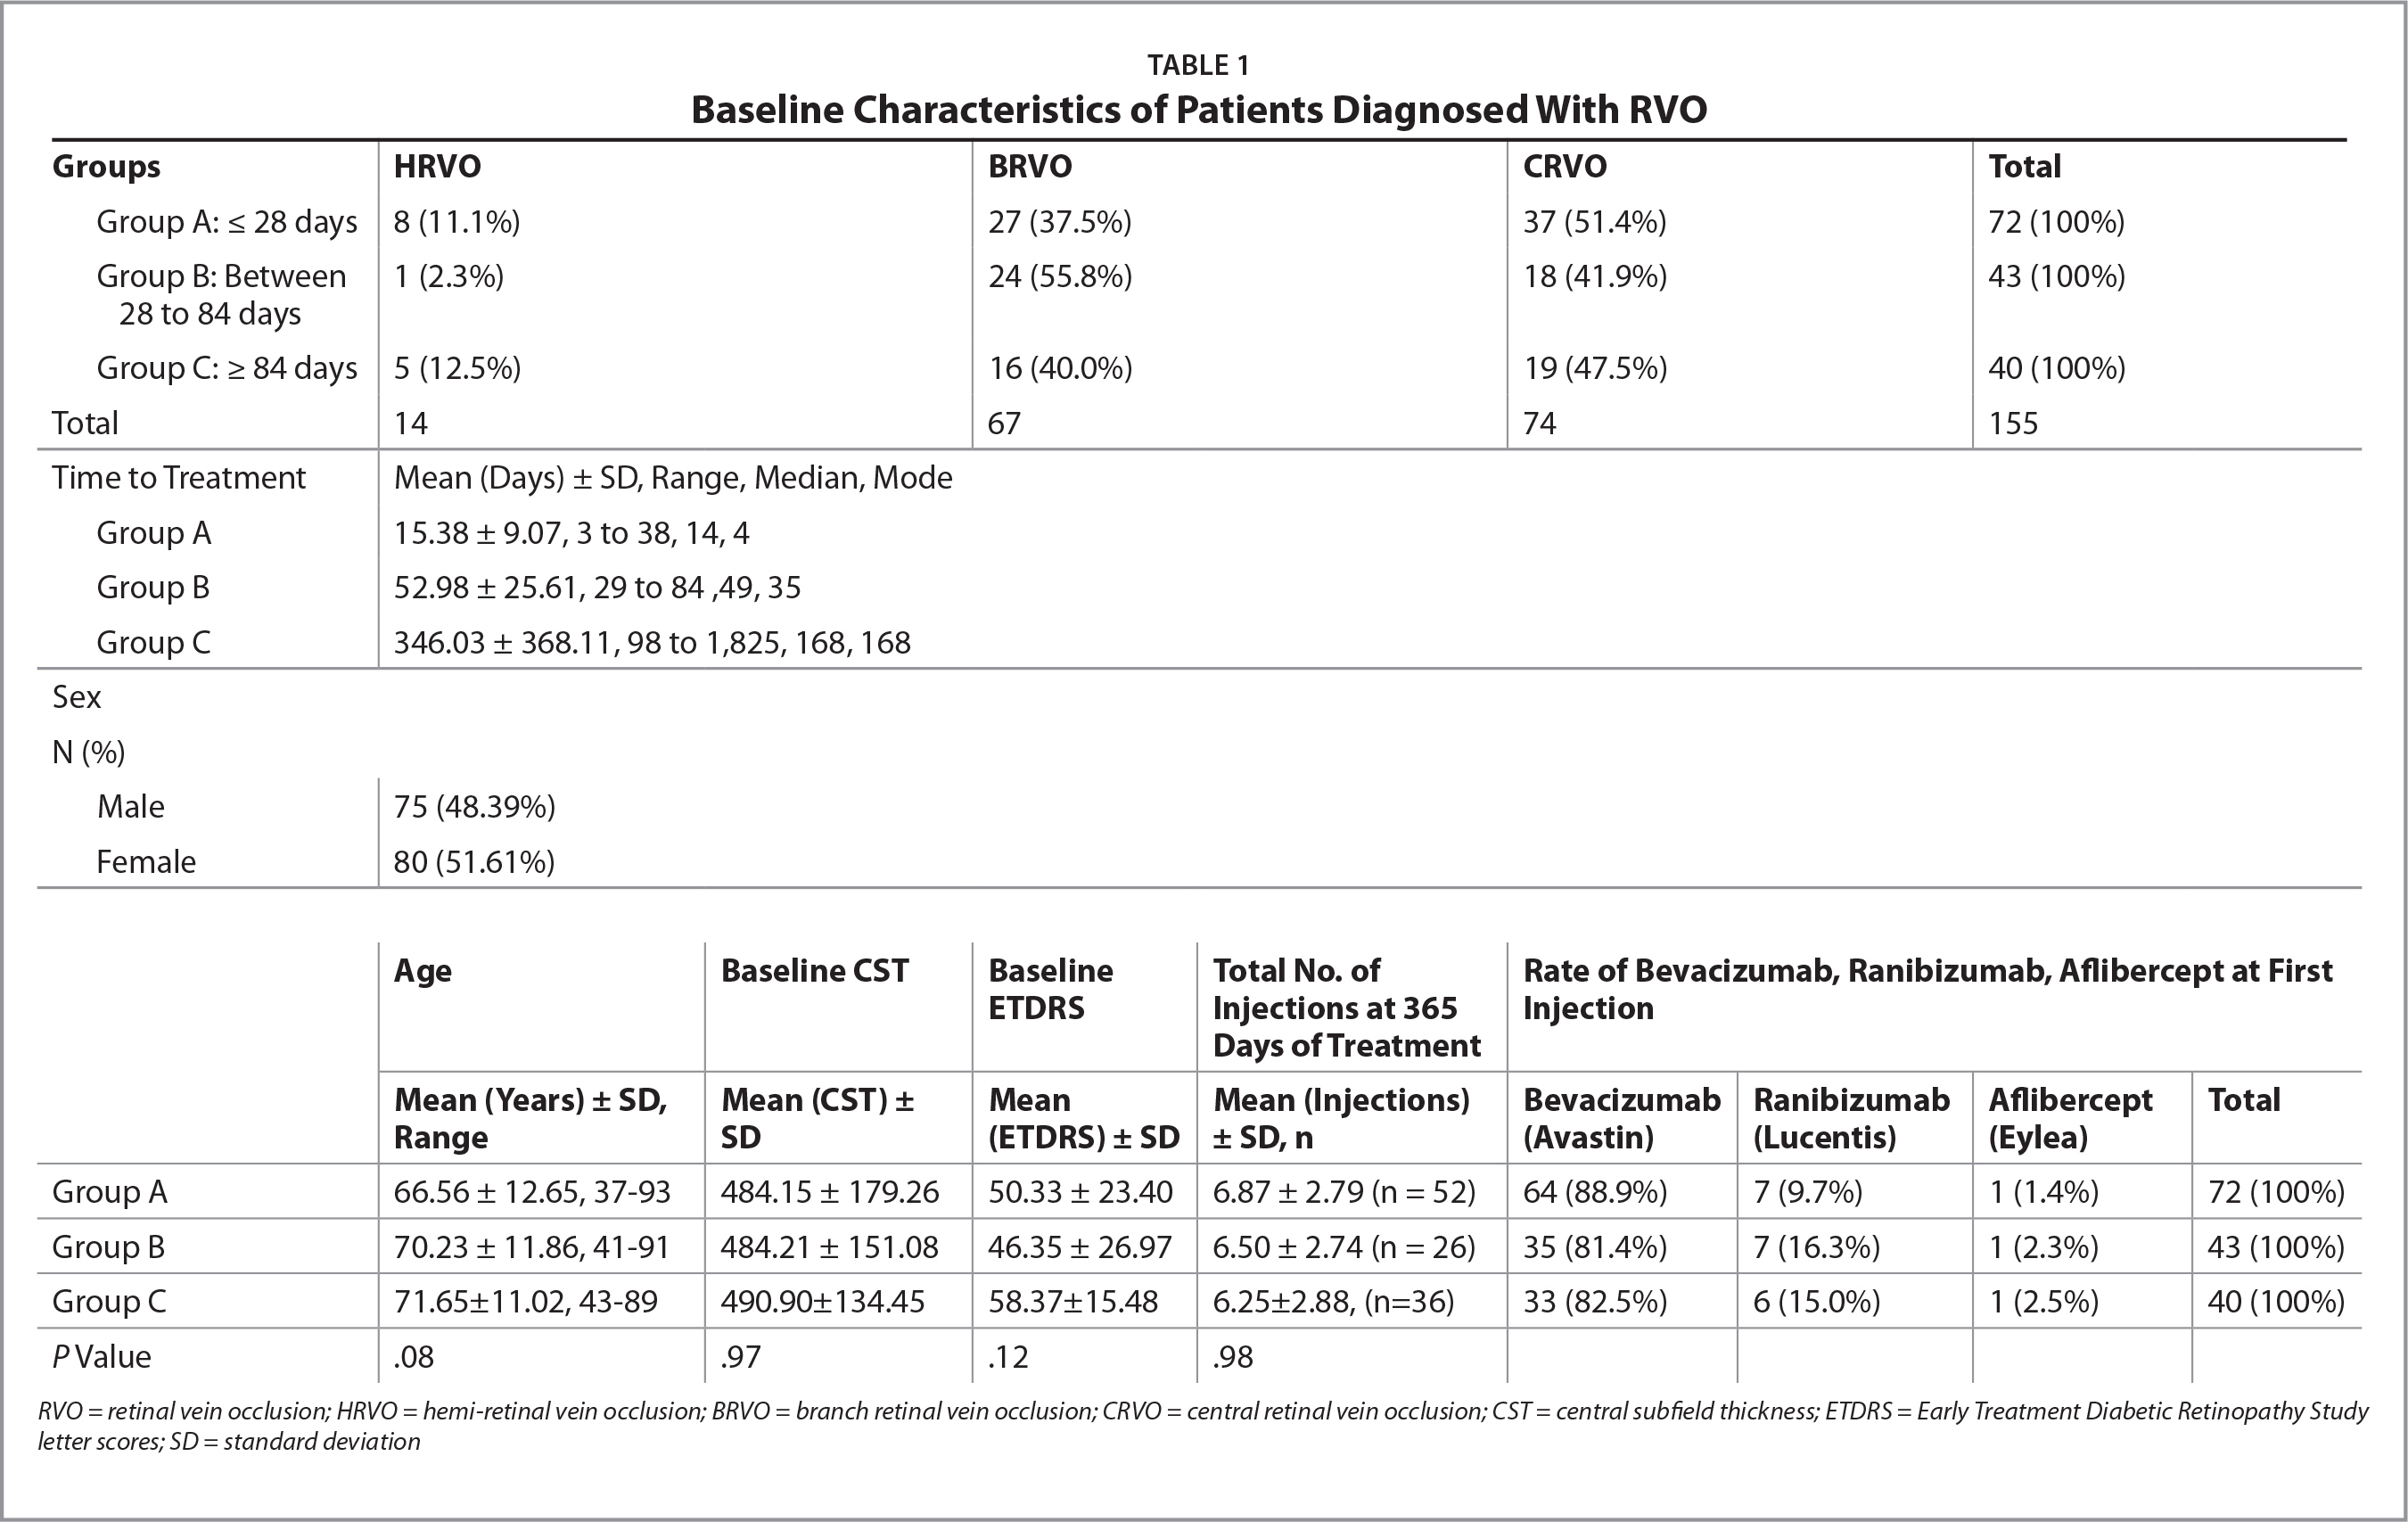 Baseline Characteristics of Patients Diagnosed With RVO